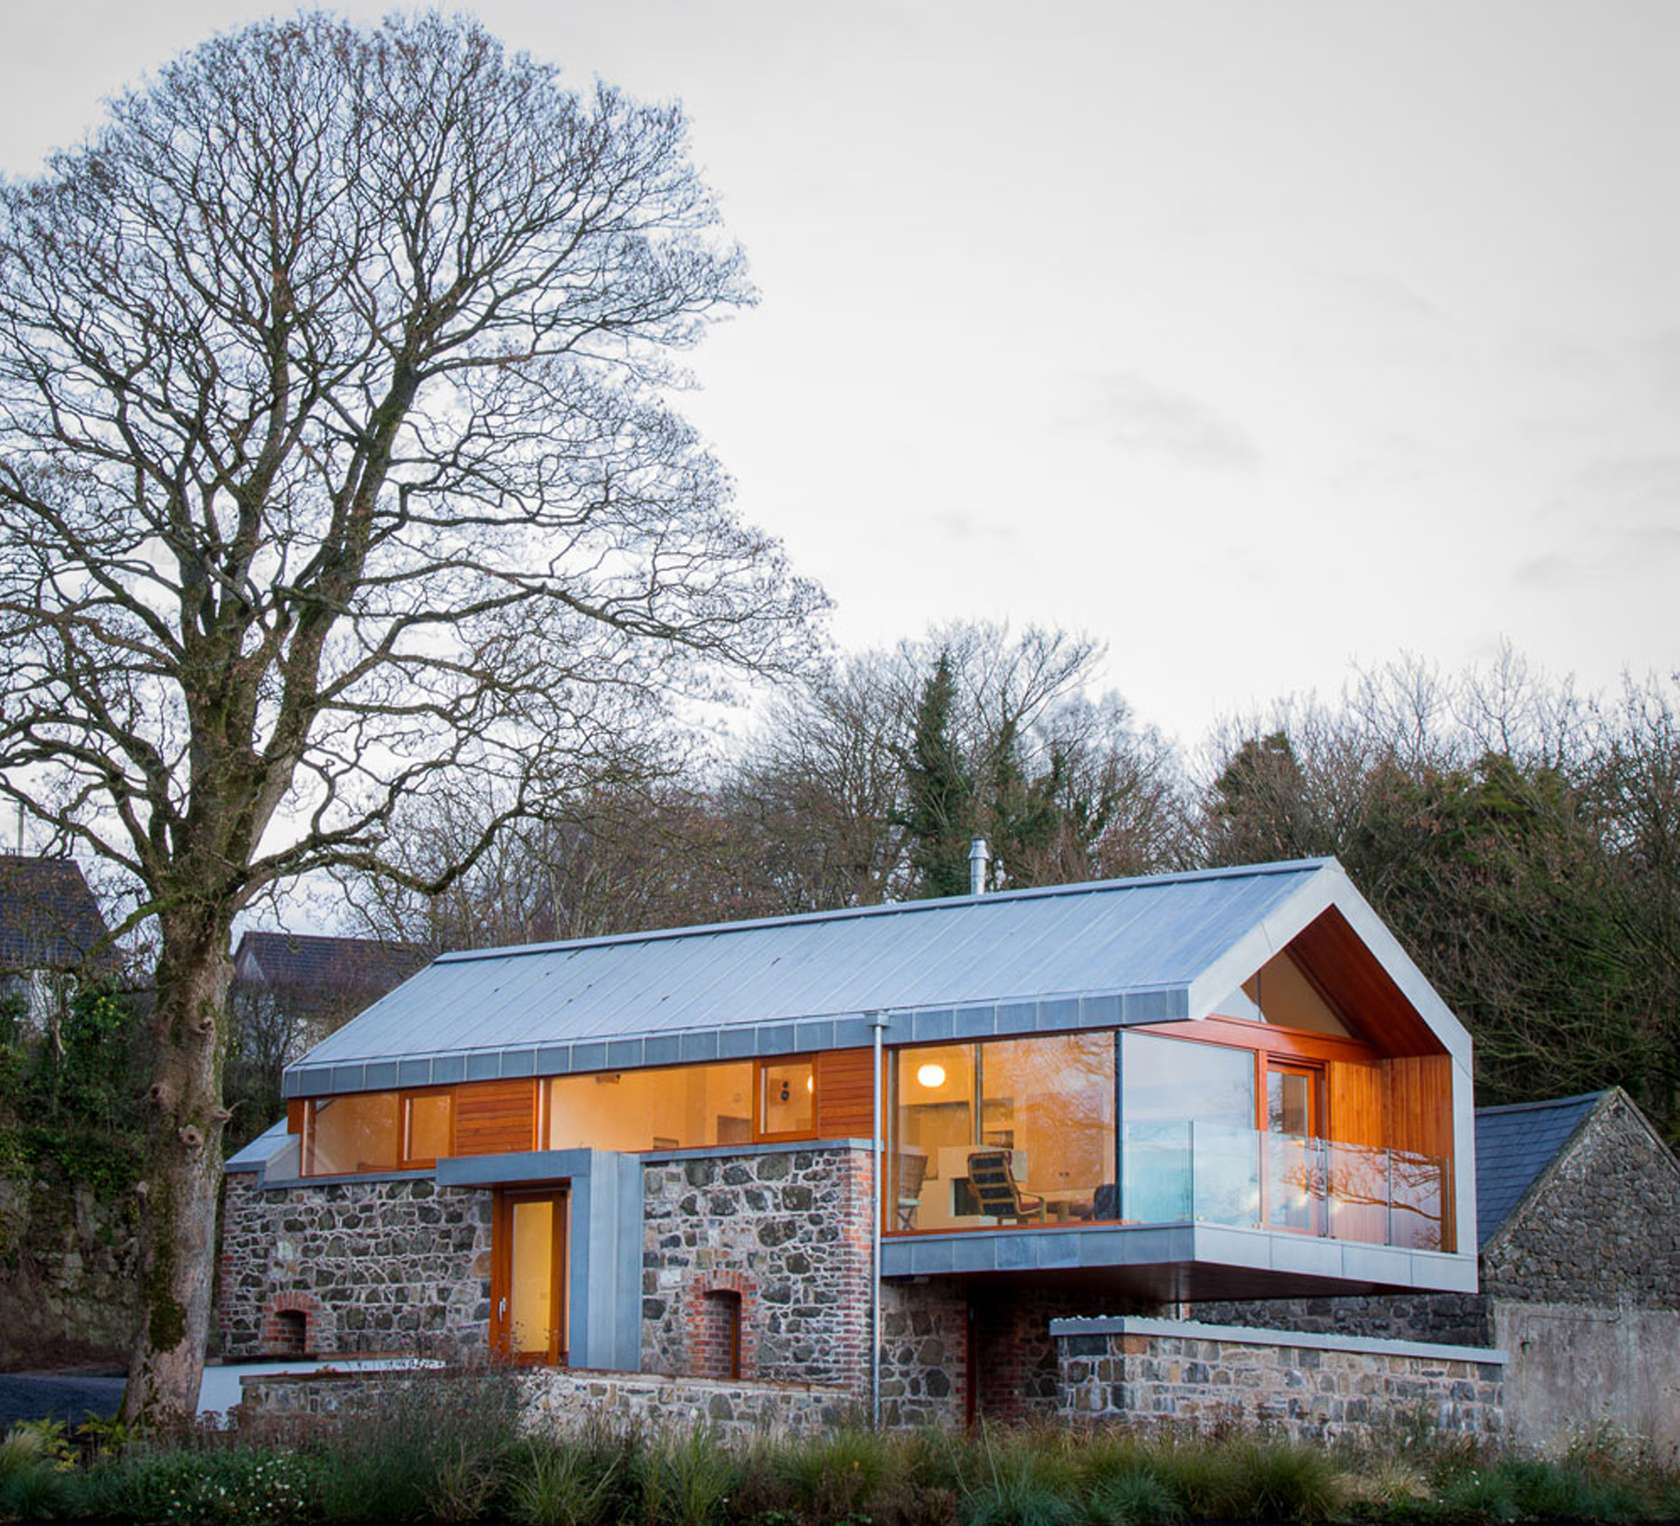 Mcgarry moon architects ltd architizer for Home architecture ltd